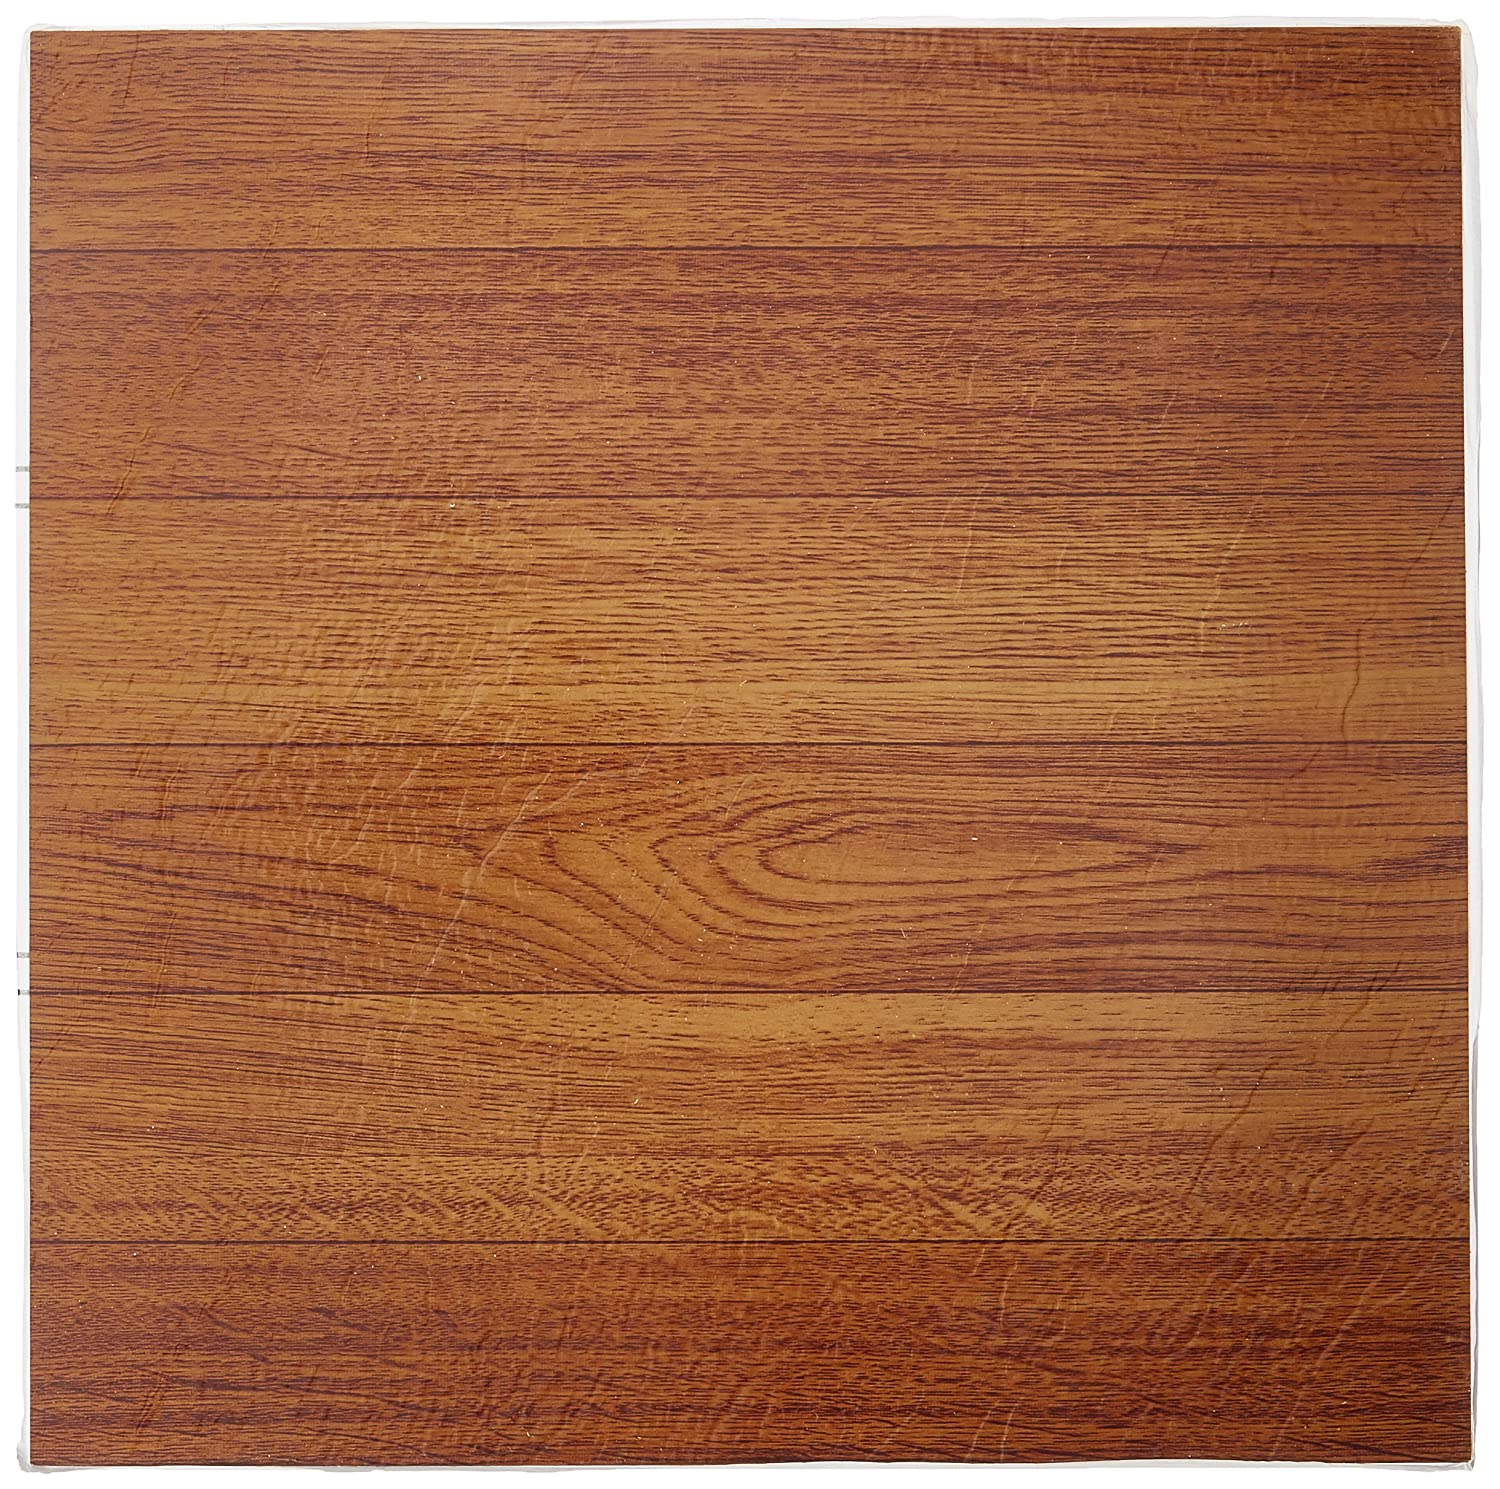 Amazon home dynamix 273d dynamix vinyl tile 12 by 12 inch amazon home dynamix 273d dynamix vinyl tile 12 by 12 inch woodtone box of 20 home kitchen dailygadgetfo Gallery